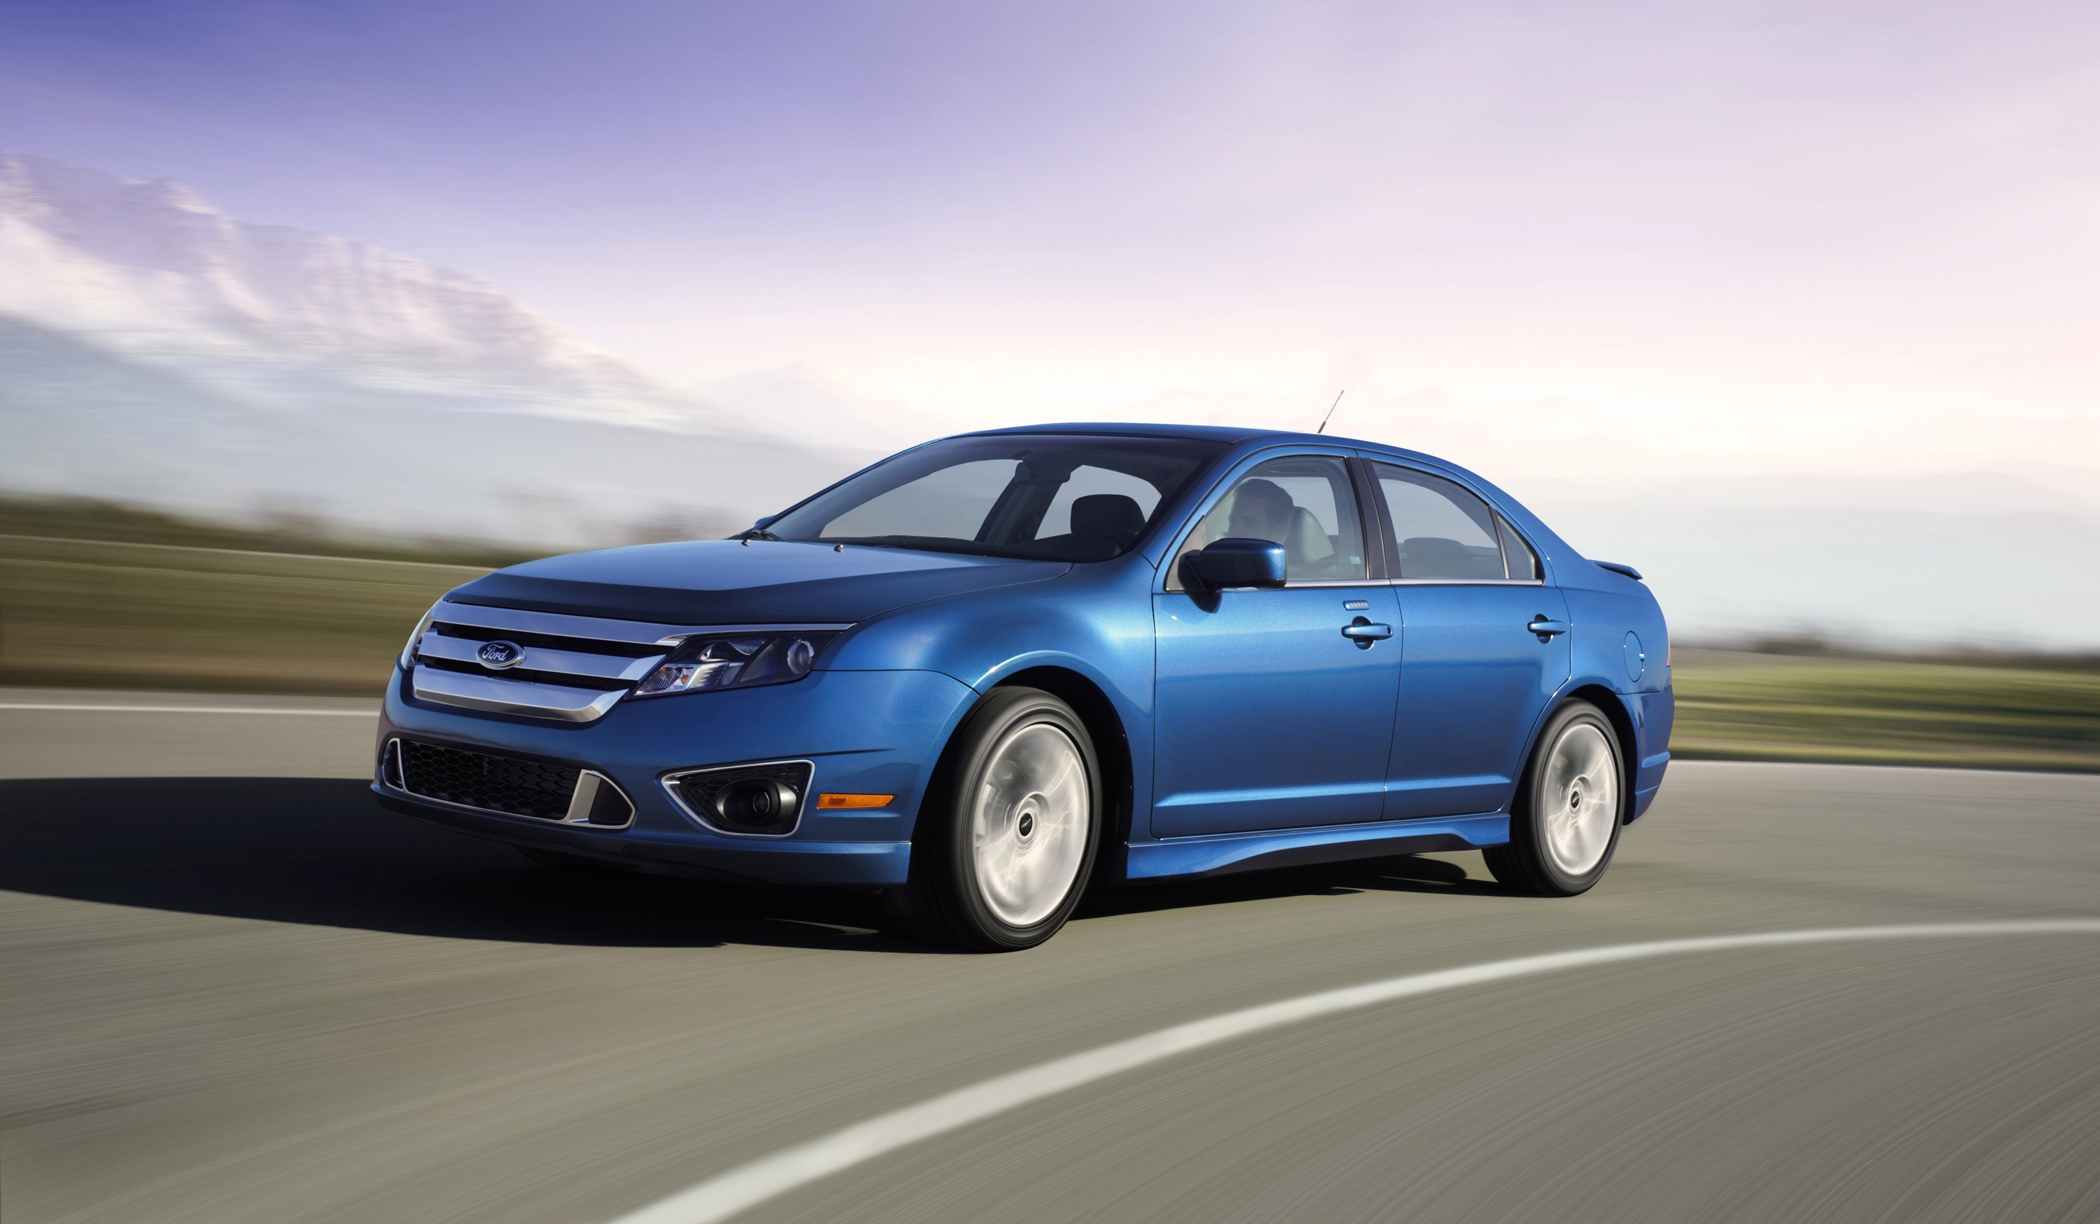 This product image provided by Ford Motor Co. shows a 2011 Ford Fusion. U.S. safety regulators are investigating complaints of power-assisted steering failure in 938,000 Ford Fusion and Lincoln MKZ cars from the 2010 through 2012 model years, as well as the 2011 Mercury Milan. (AP Photo/Ford Motor Co.)